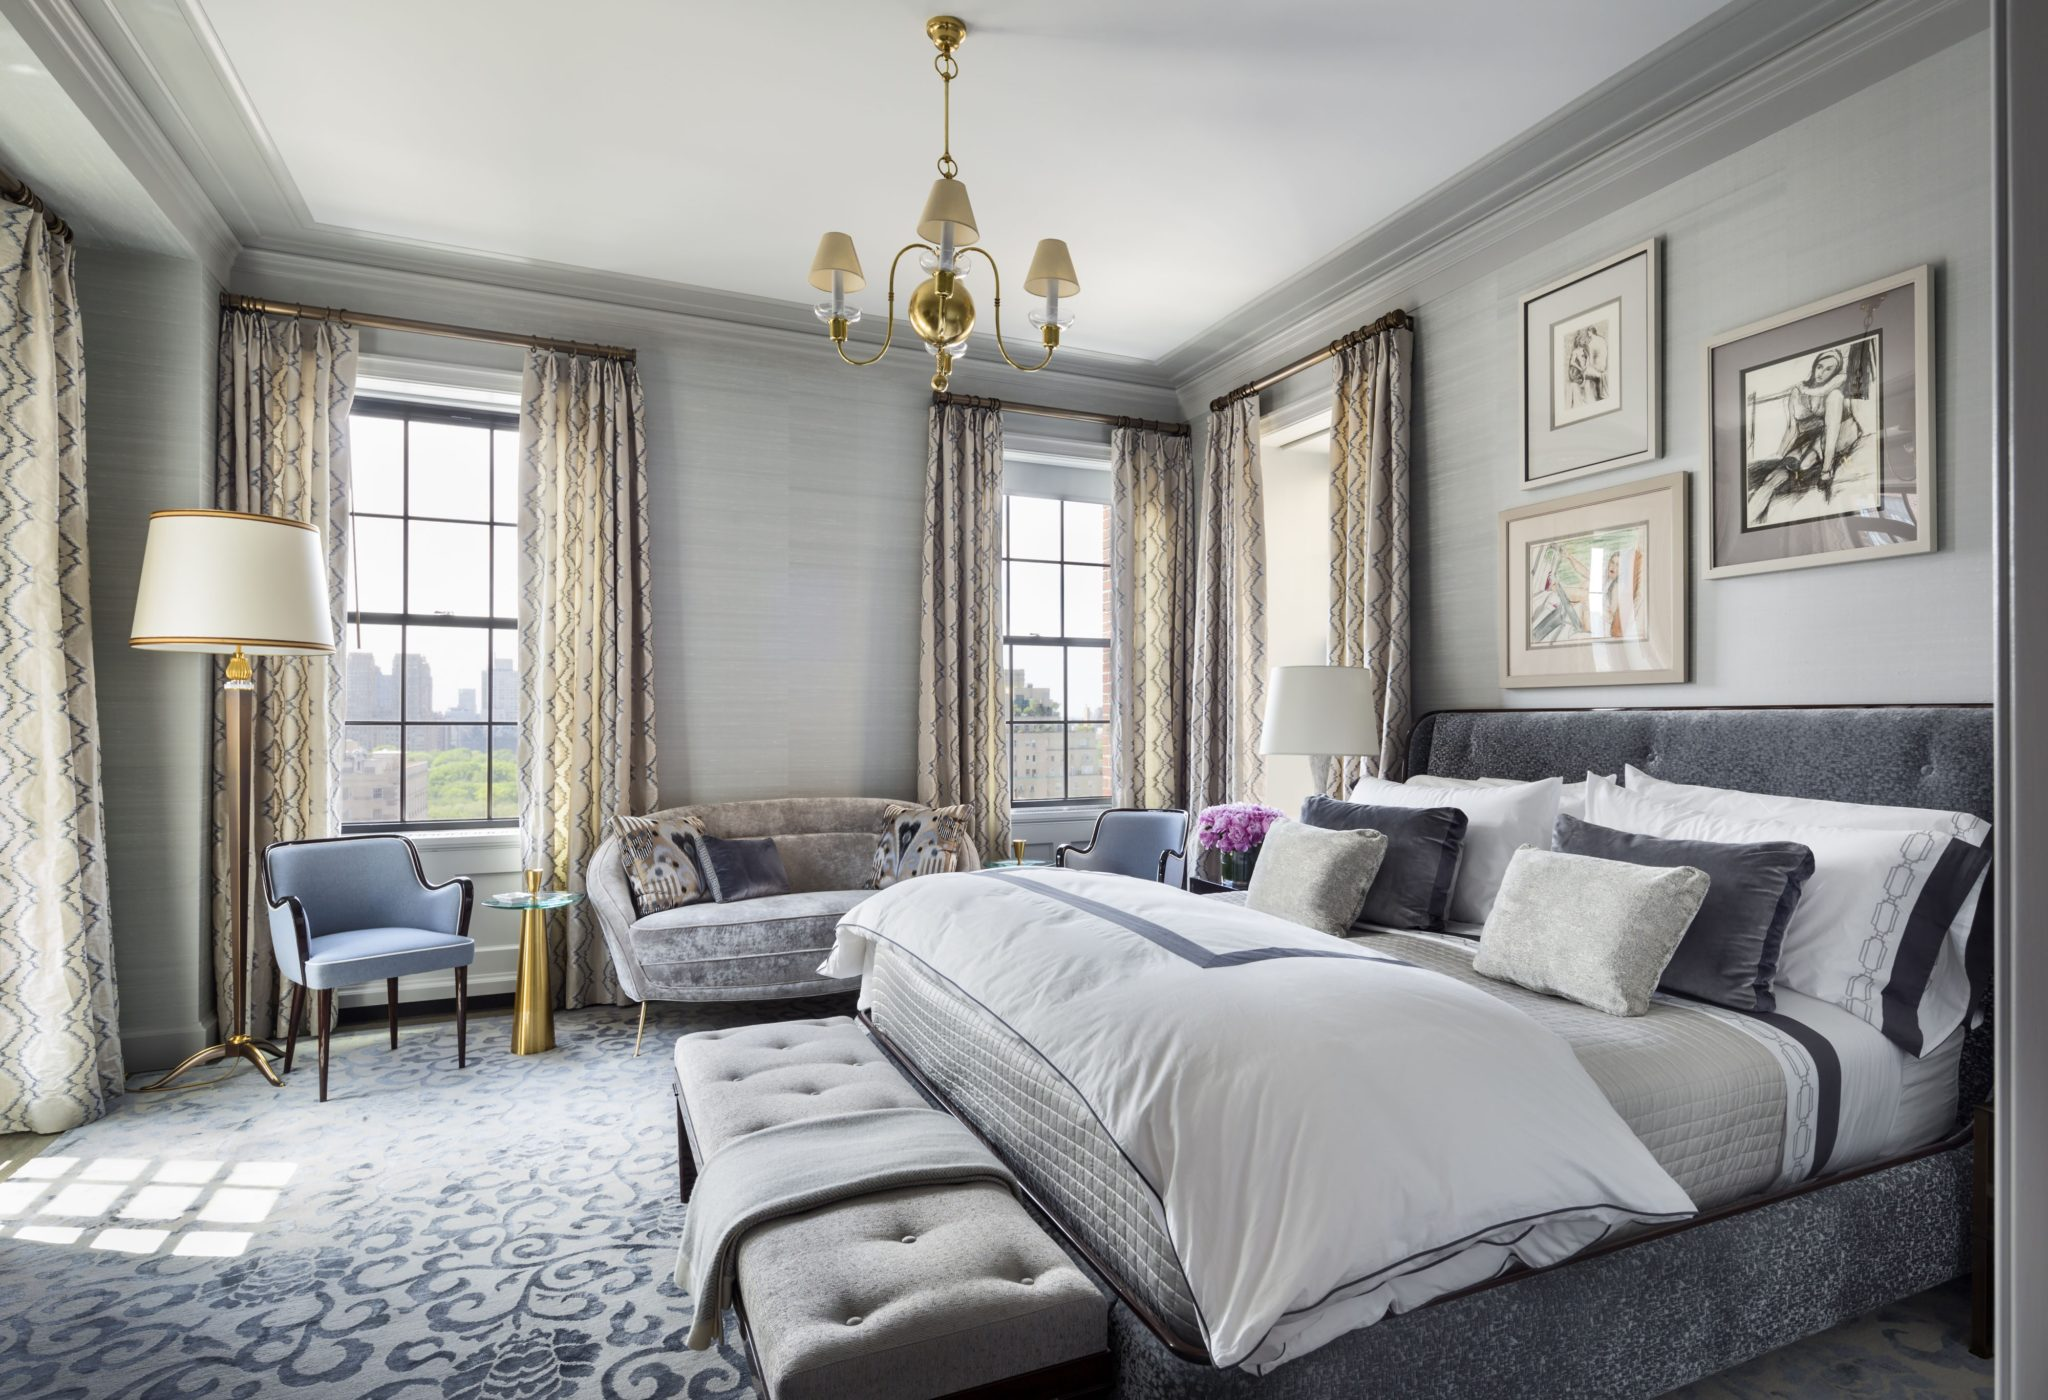 The enlarged master bedroom features silk wall coverings by Holland & Sherry, Duralee fabric curtains, and a custom-made side table by The Lacquer Company. The rug was also custom-made by Mansour Modern.